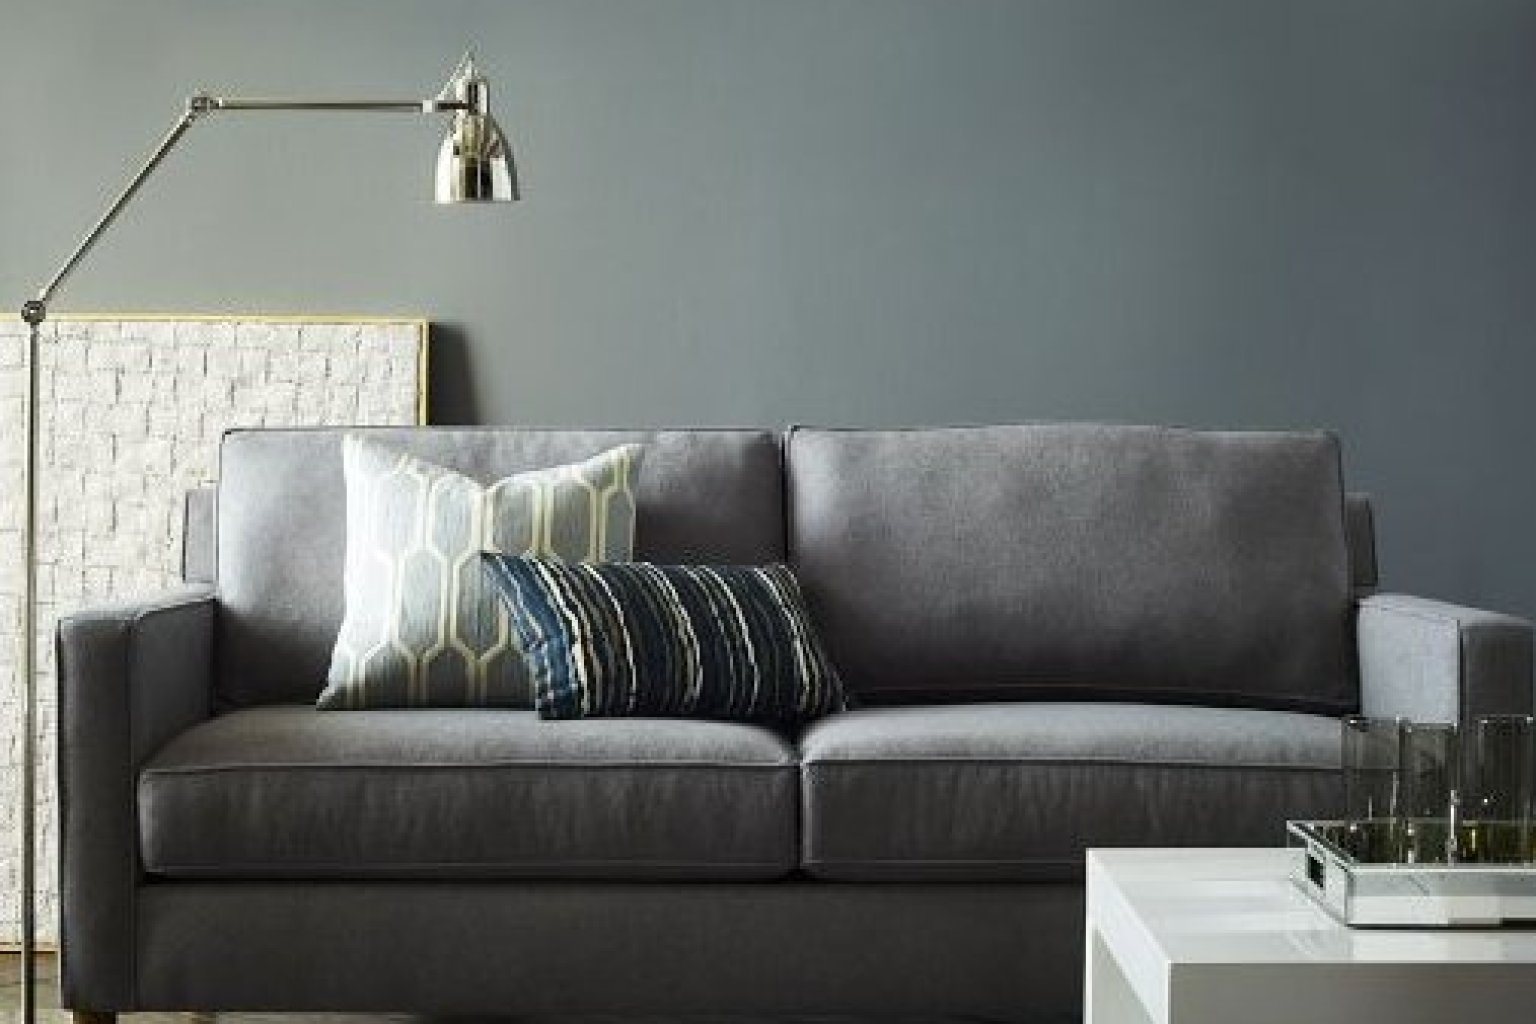 6 couches for small apartments that will actually fit in for Sofas for small rooms